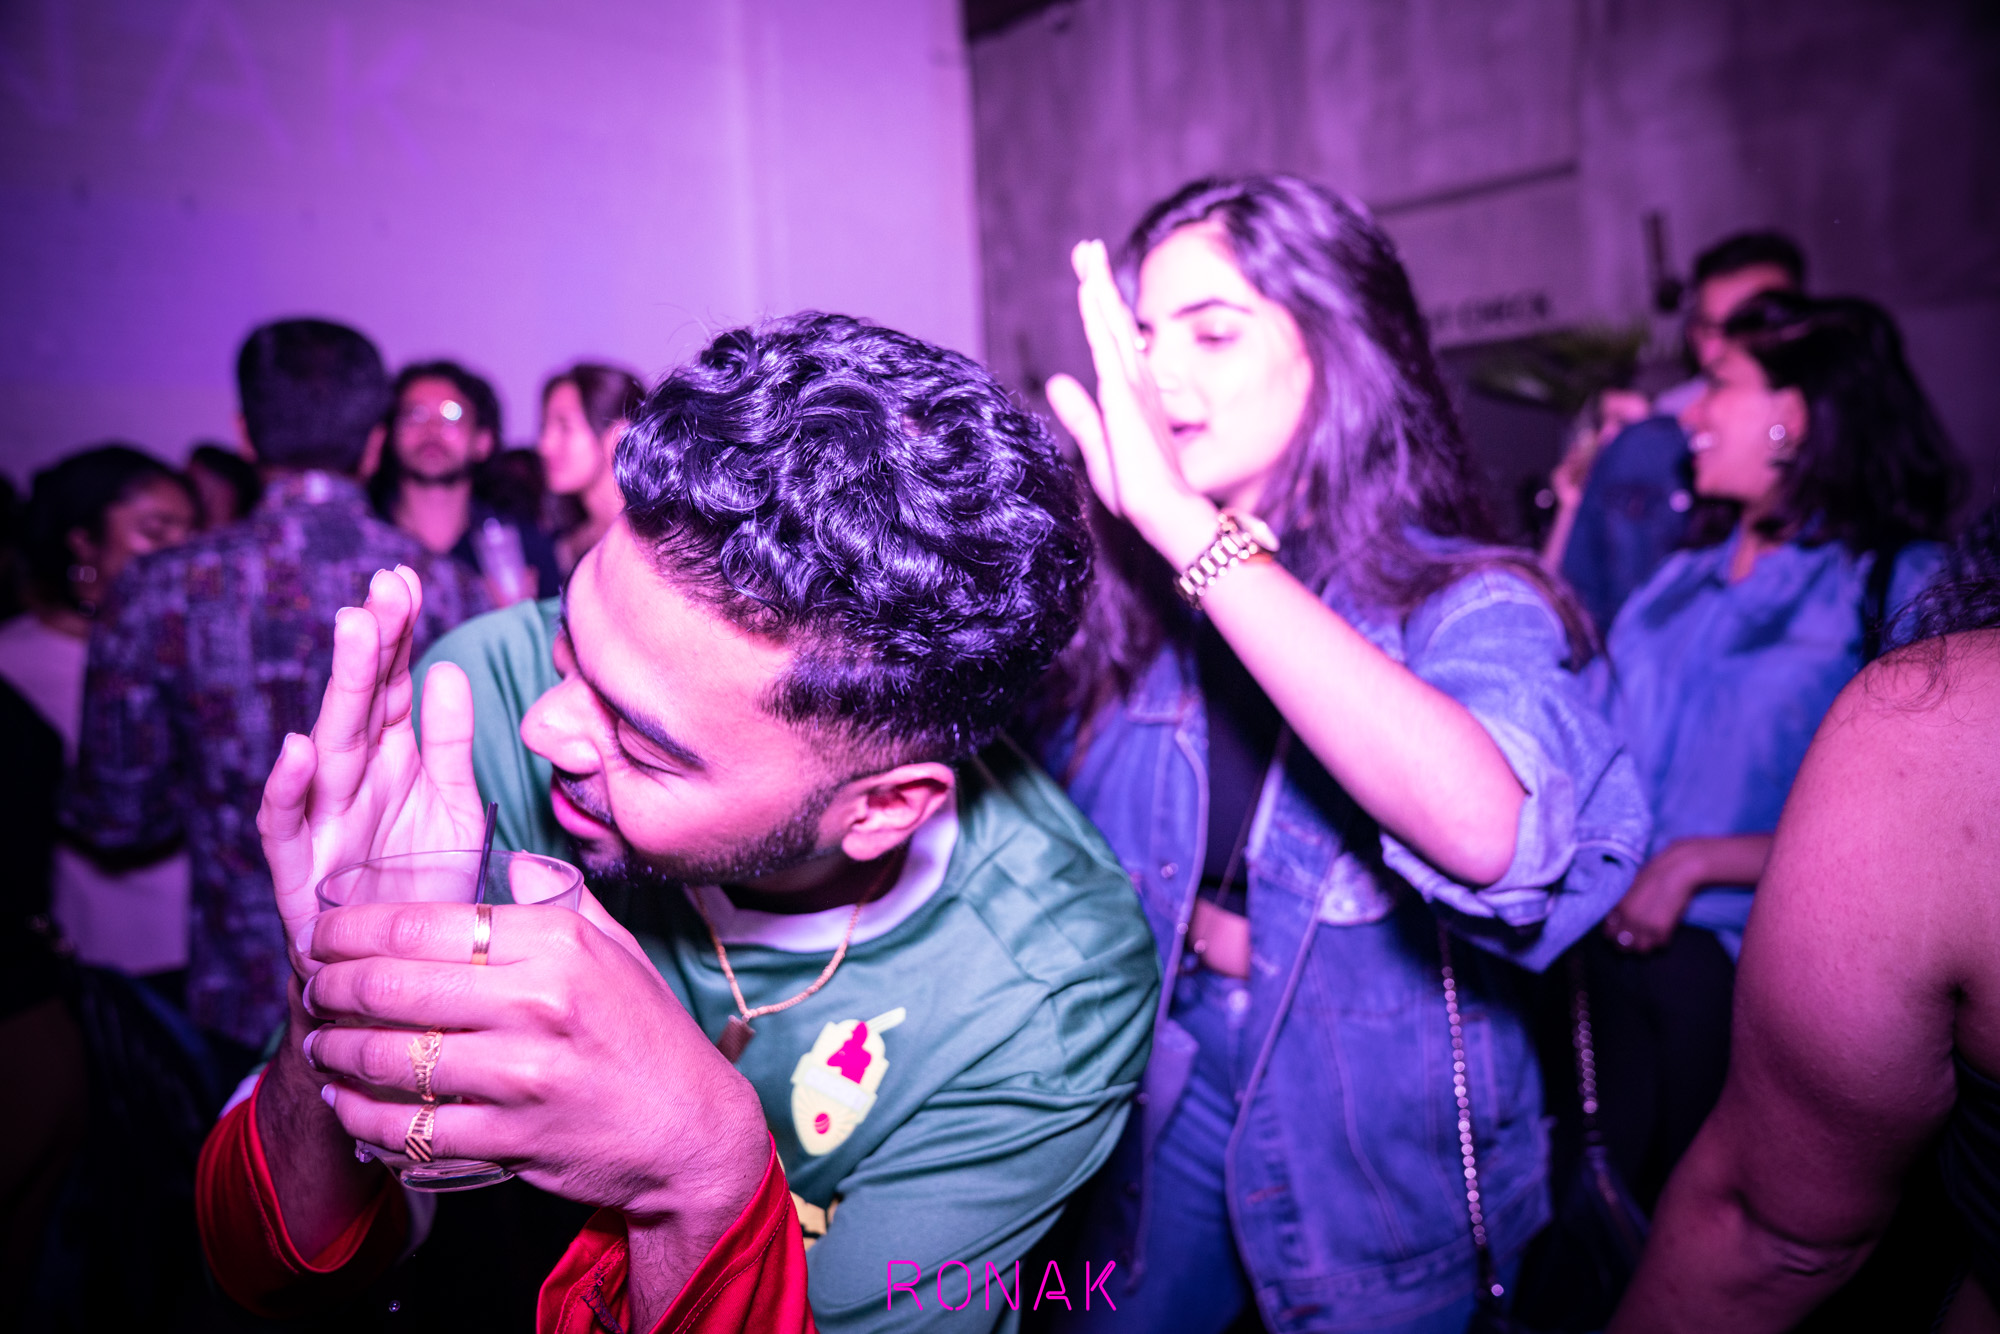 RONAK PARTY NYC-131.jpg